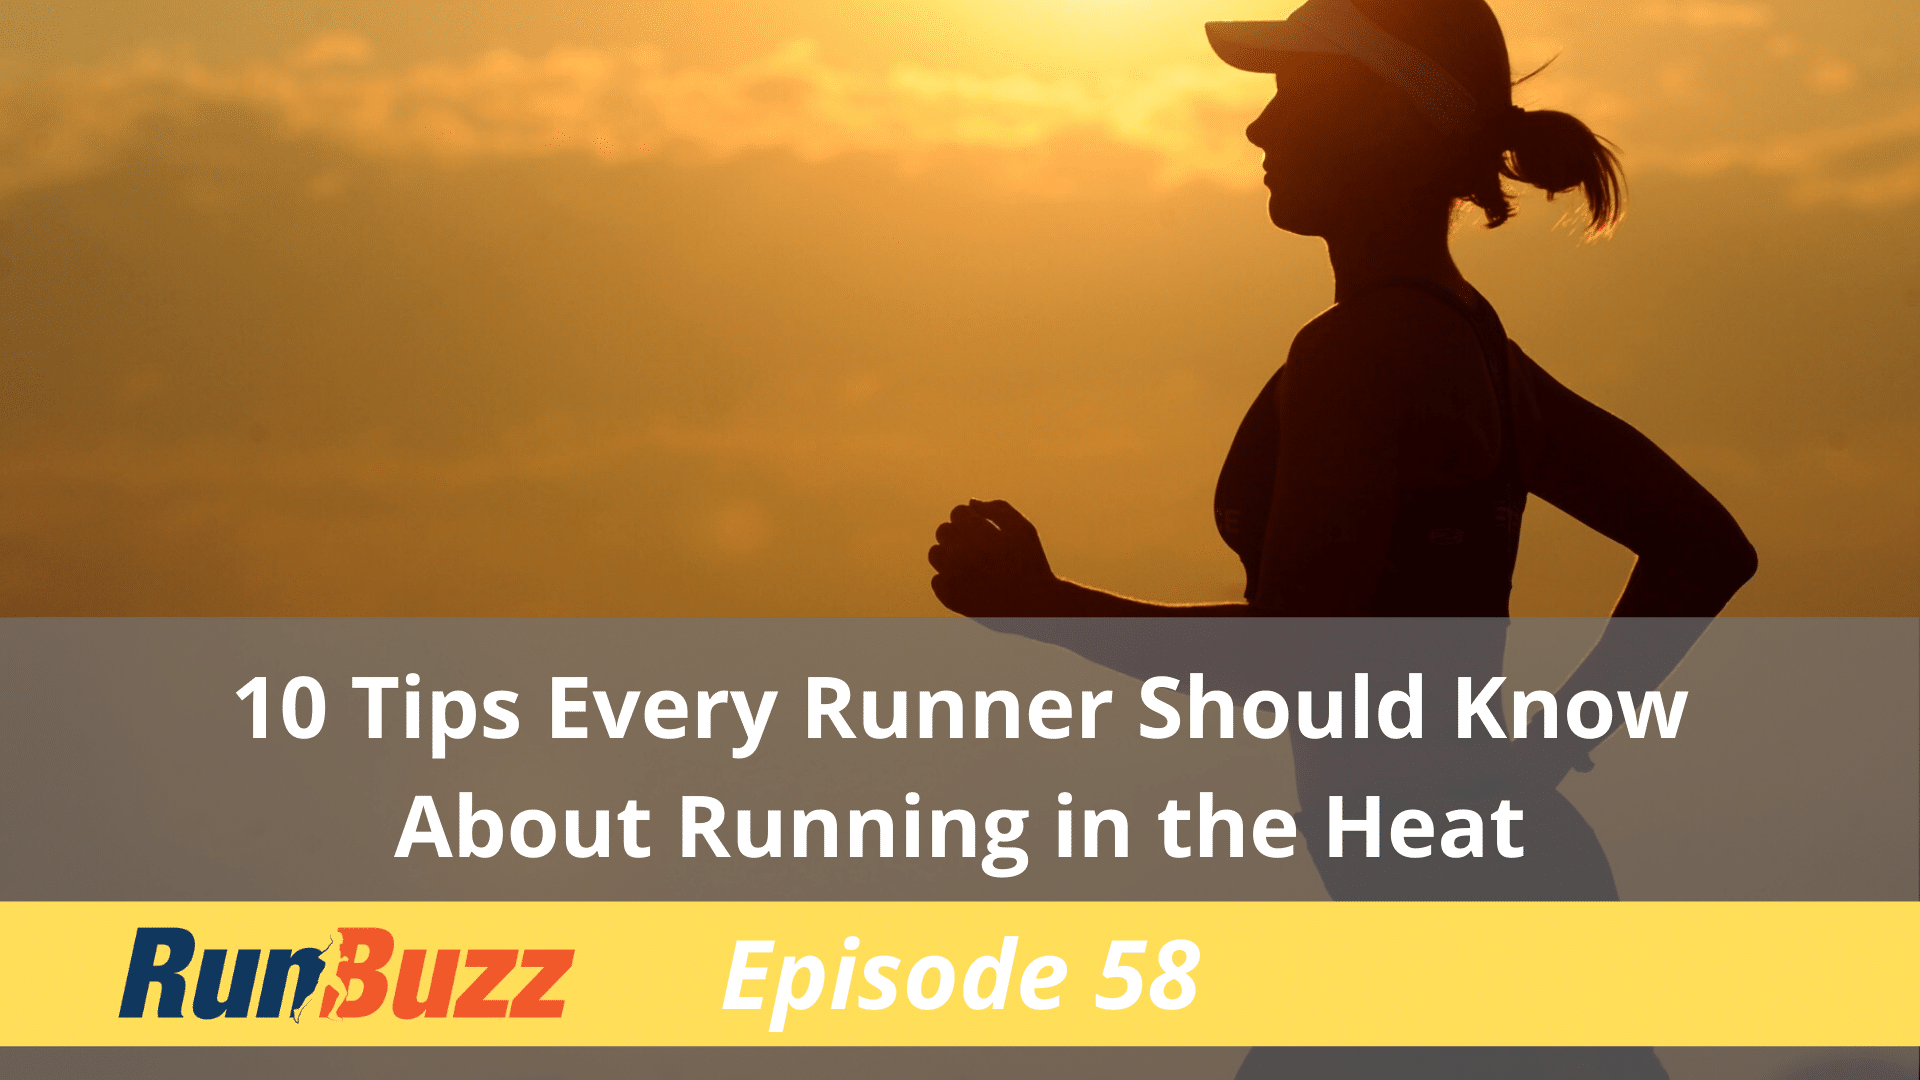 10-Tips-Every-Runner-Should-Know-About-Running-in-the-Heat